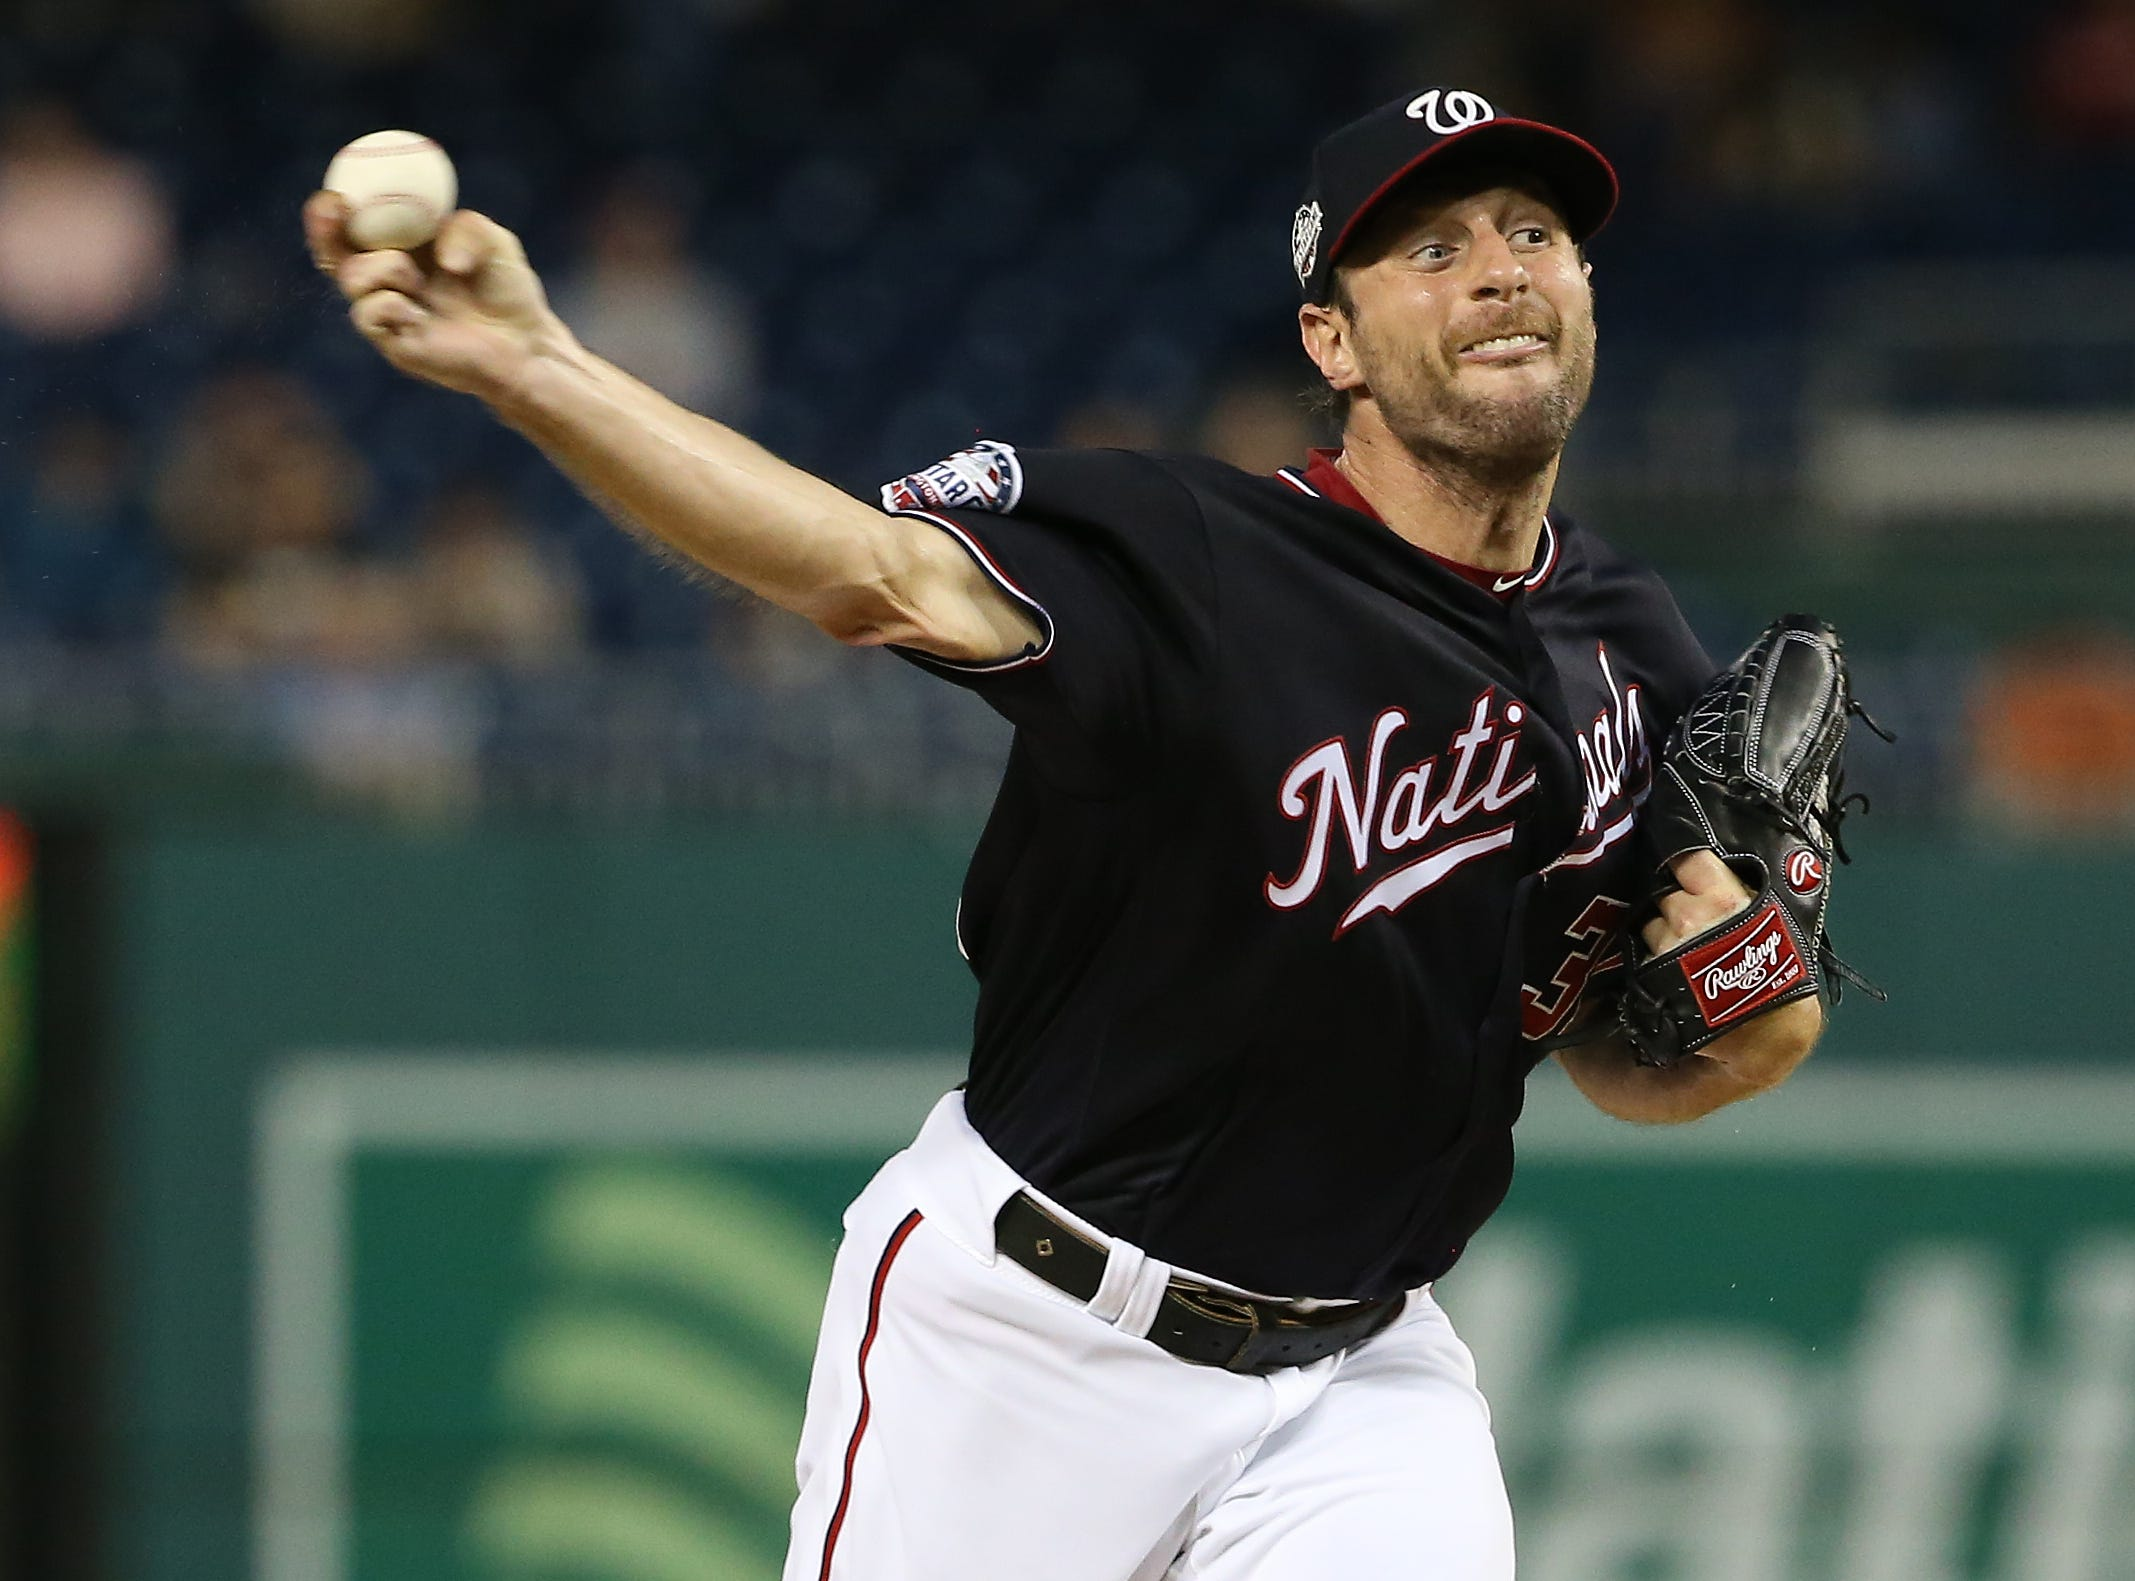 4. Max Scherzer, Washington Nationals starting pitcher